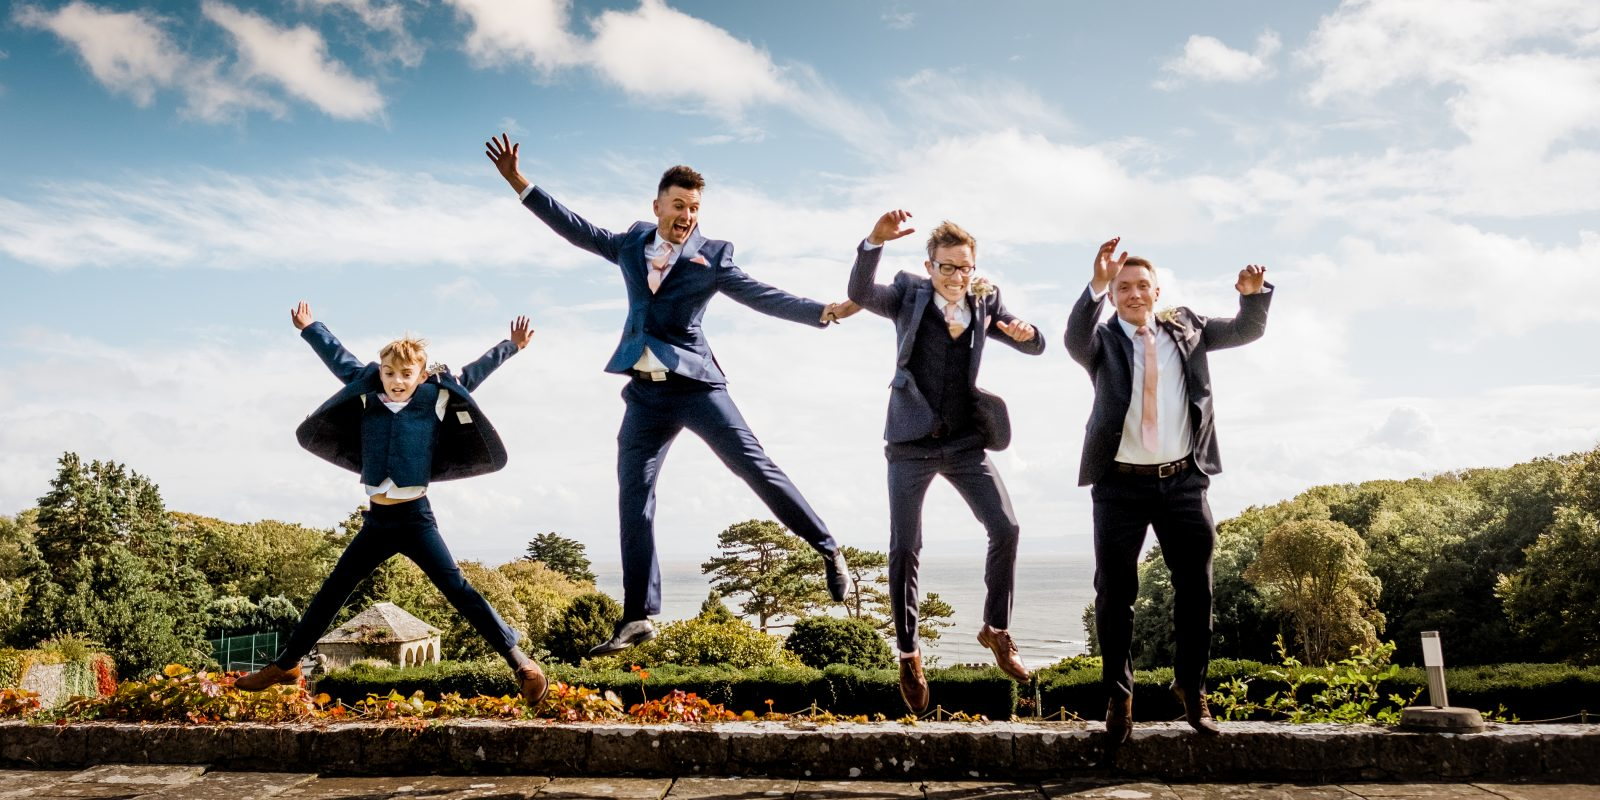 grooms jumping wedding photography